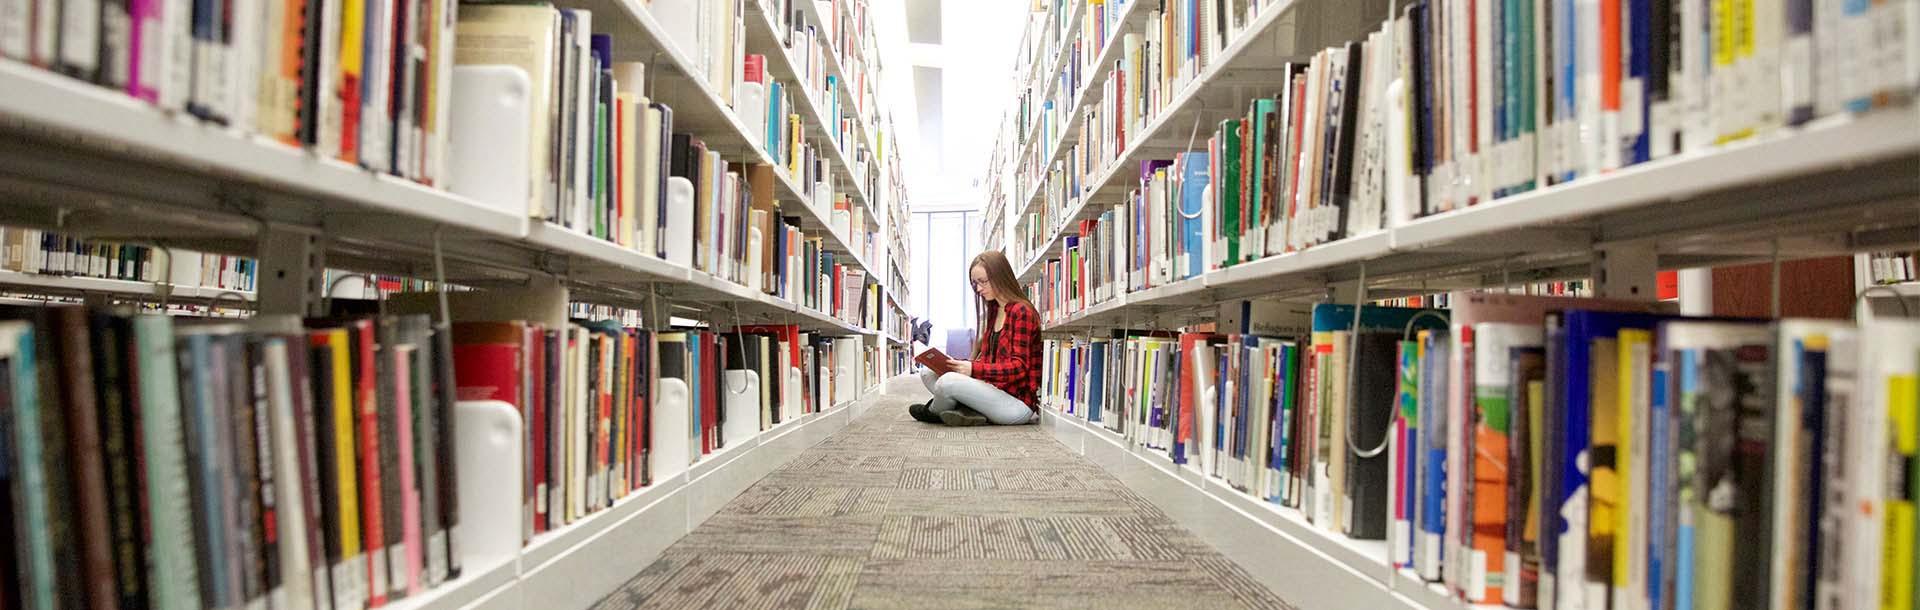 Student reading between Library shelves